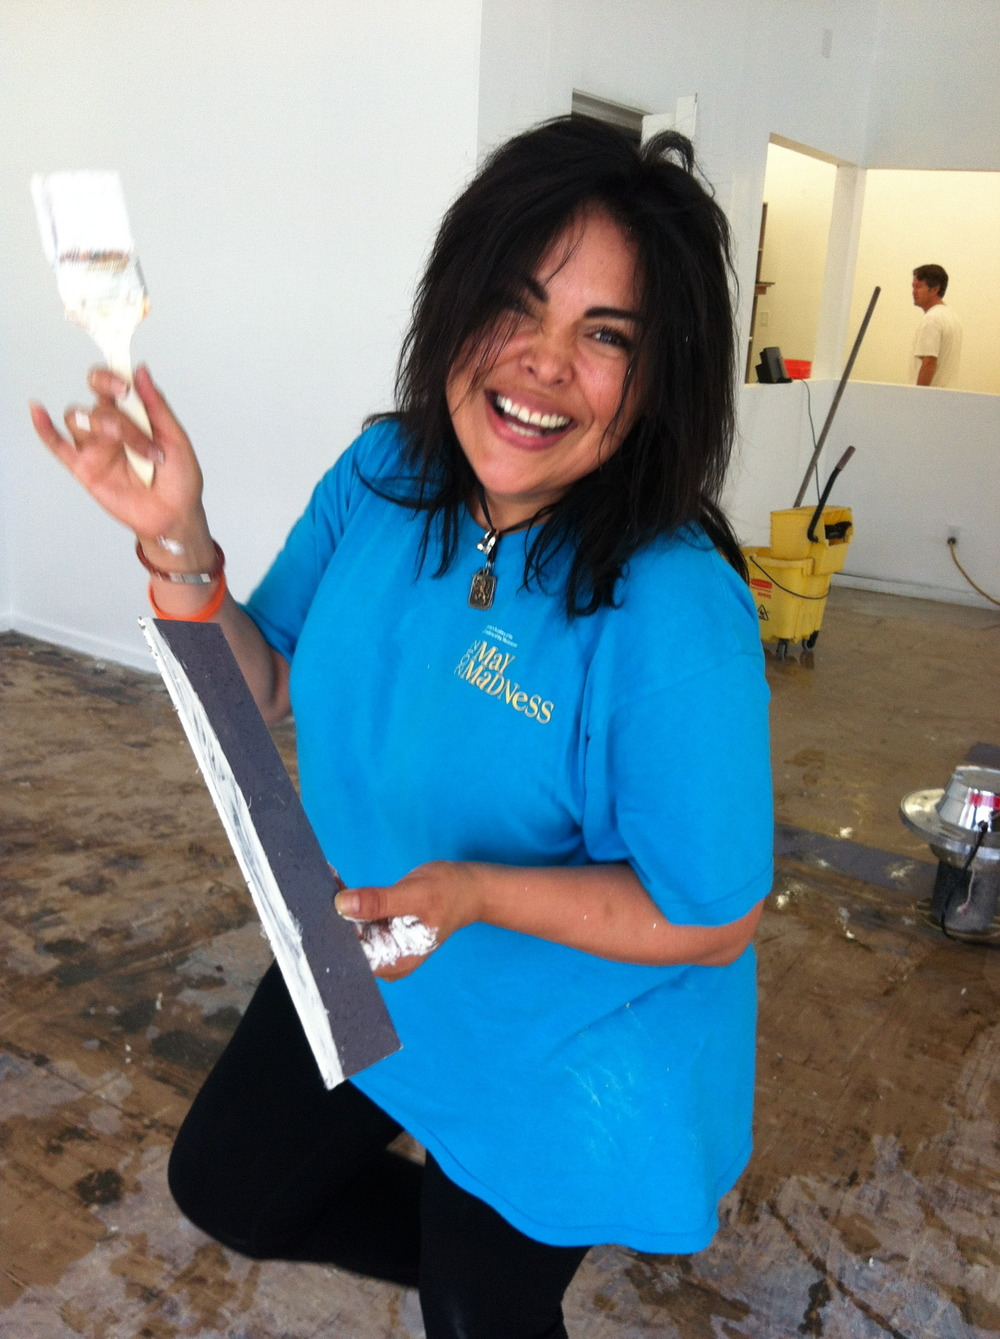 Kimberly Delgado from Montecito Bank & Trust getting down dirty painting at Youth Interactive today!